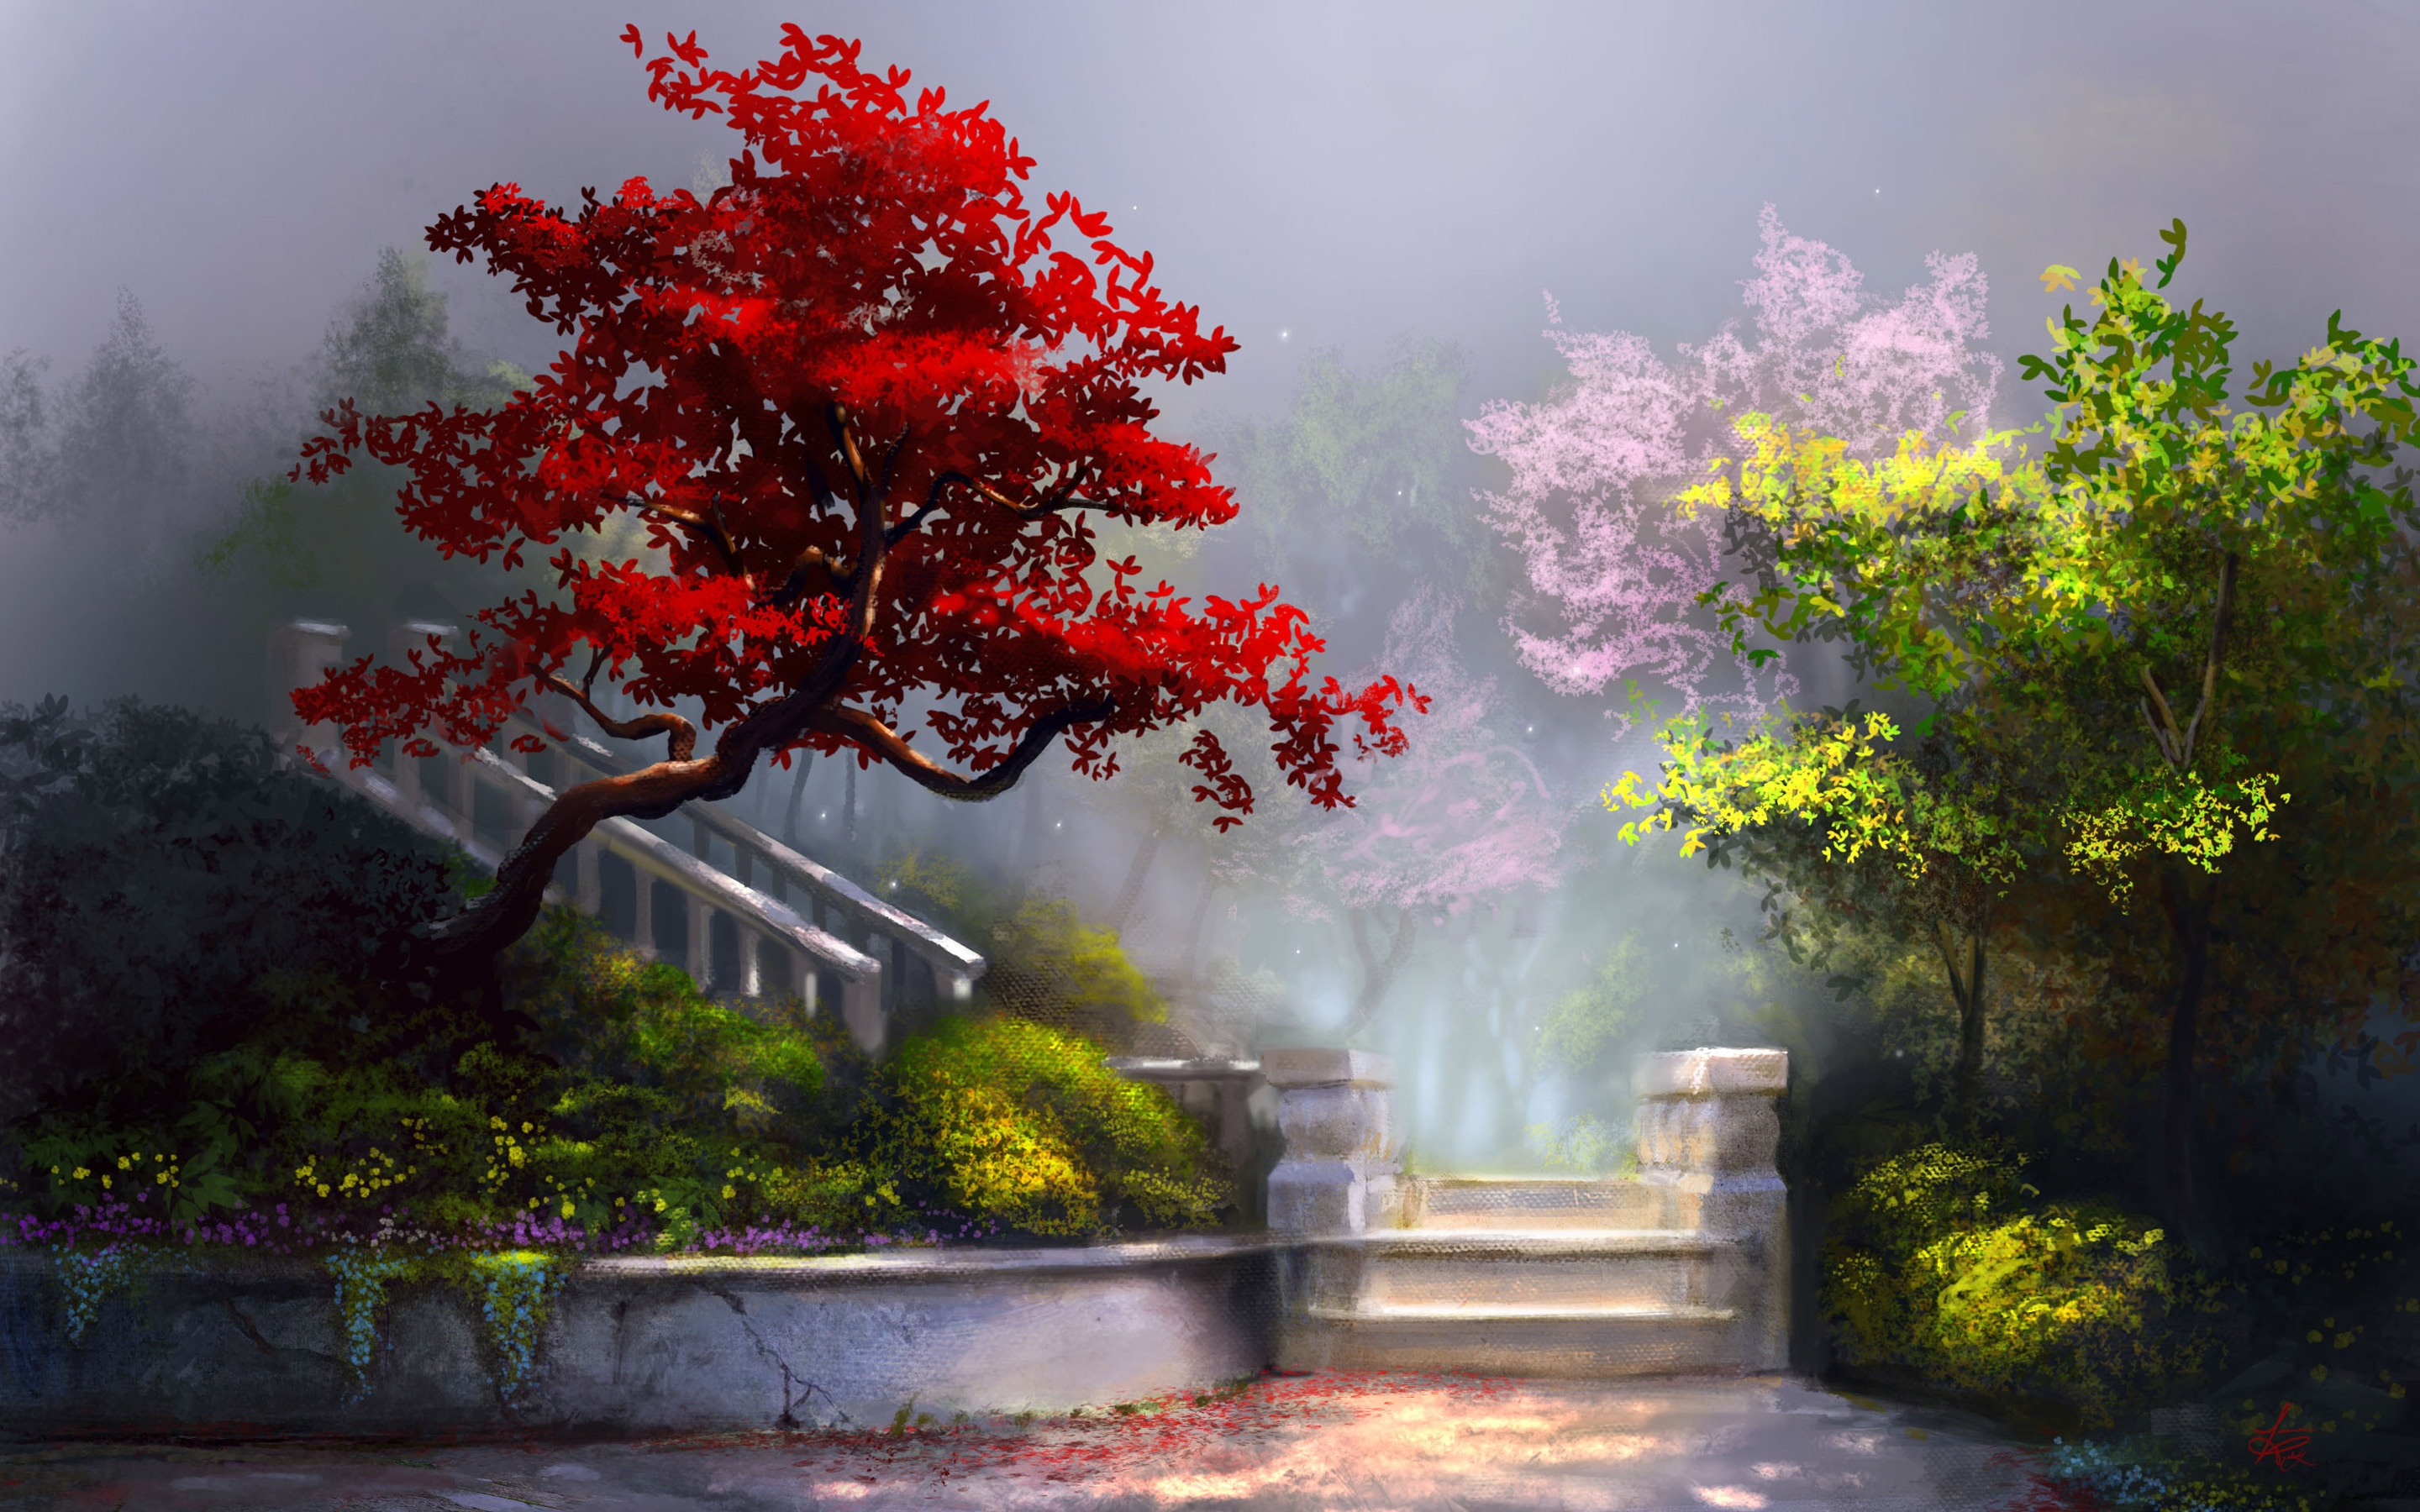 Wallpaper download garden - Free Download Wallpapers For Pc Find Reliable Online Source For Free